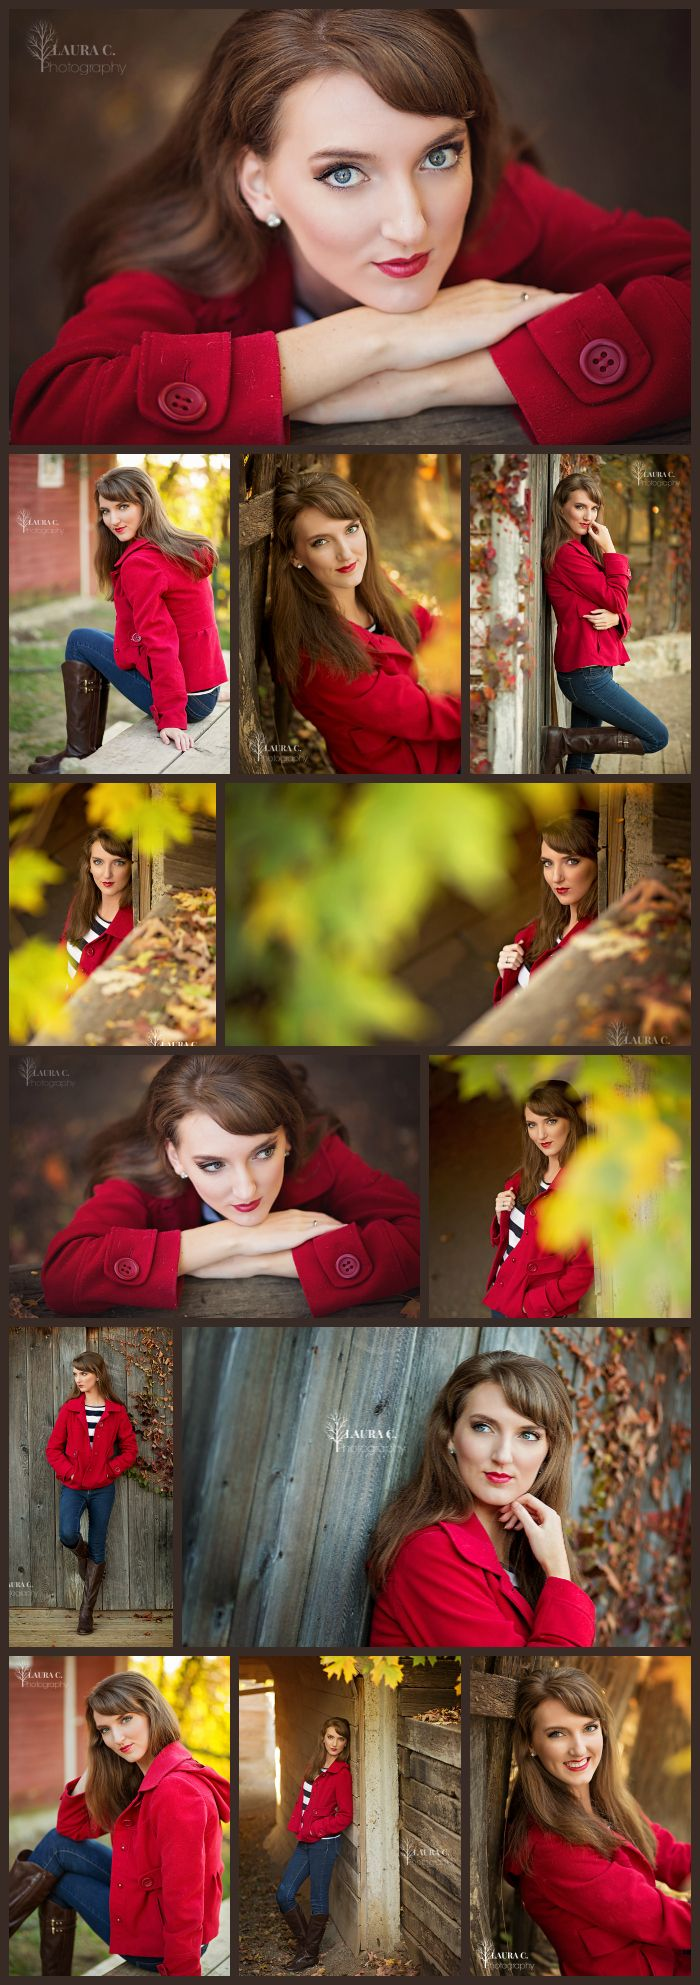 Erin Cejka | 2016 Senior | Senior Portraits | What to Wear for Senior Portraits | Poses for Senior Girls | Red Pea Coat | Farm | Rural | Fall Senior Pictures | Laura C. Photography 2015 | Photographer based in Gretna, NE